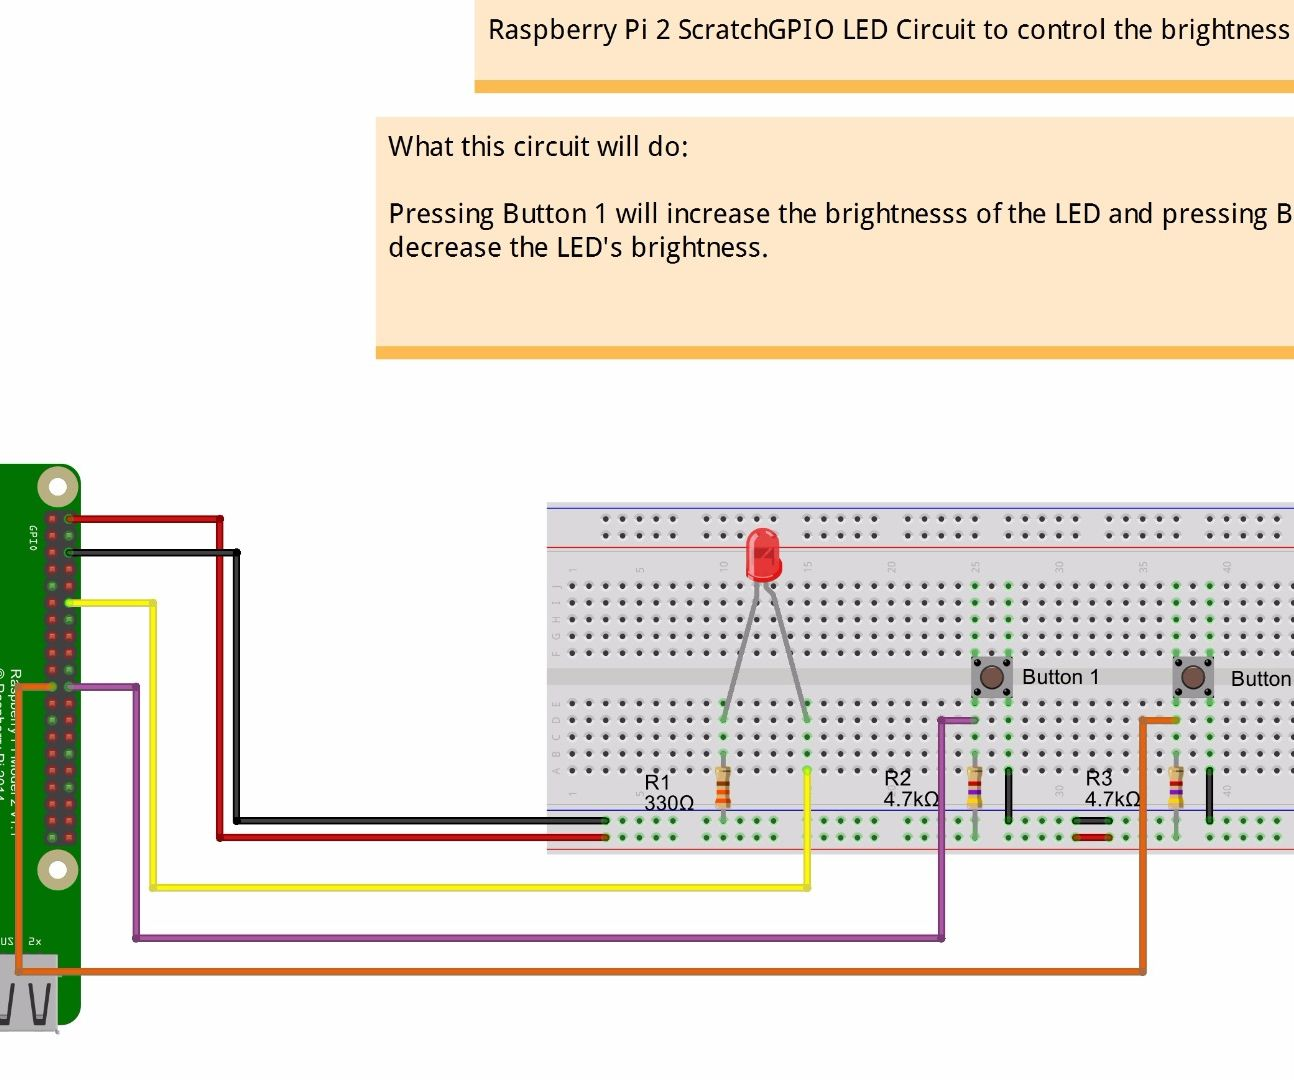 Pwm Based Led Control Using Push Buttons Raspberry Pi 2 And Scratch Circuit 8 Steps With Pictures